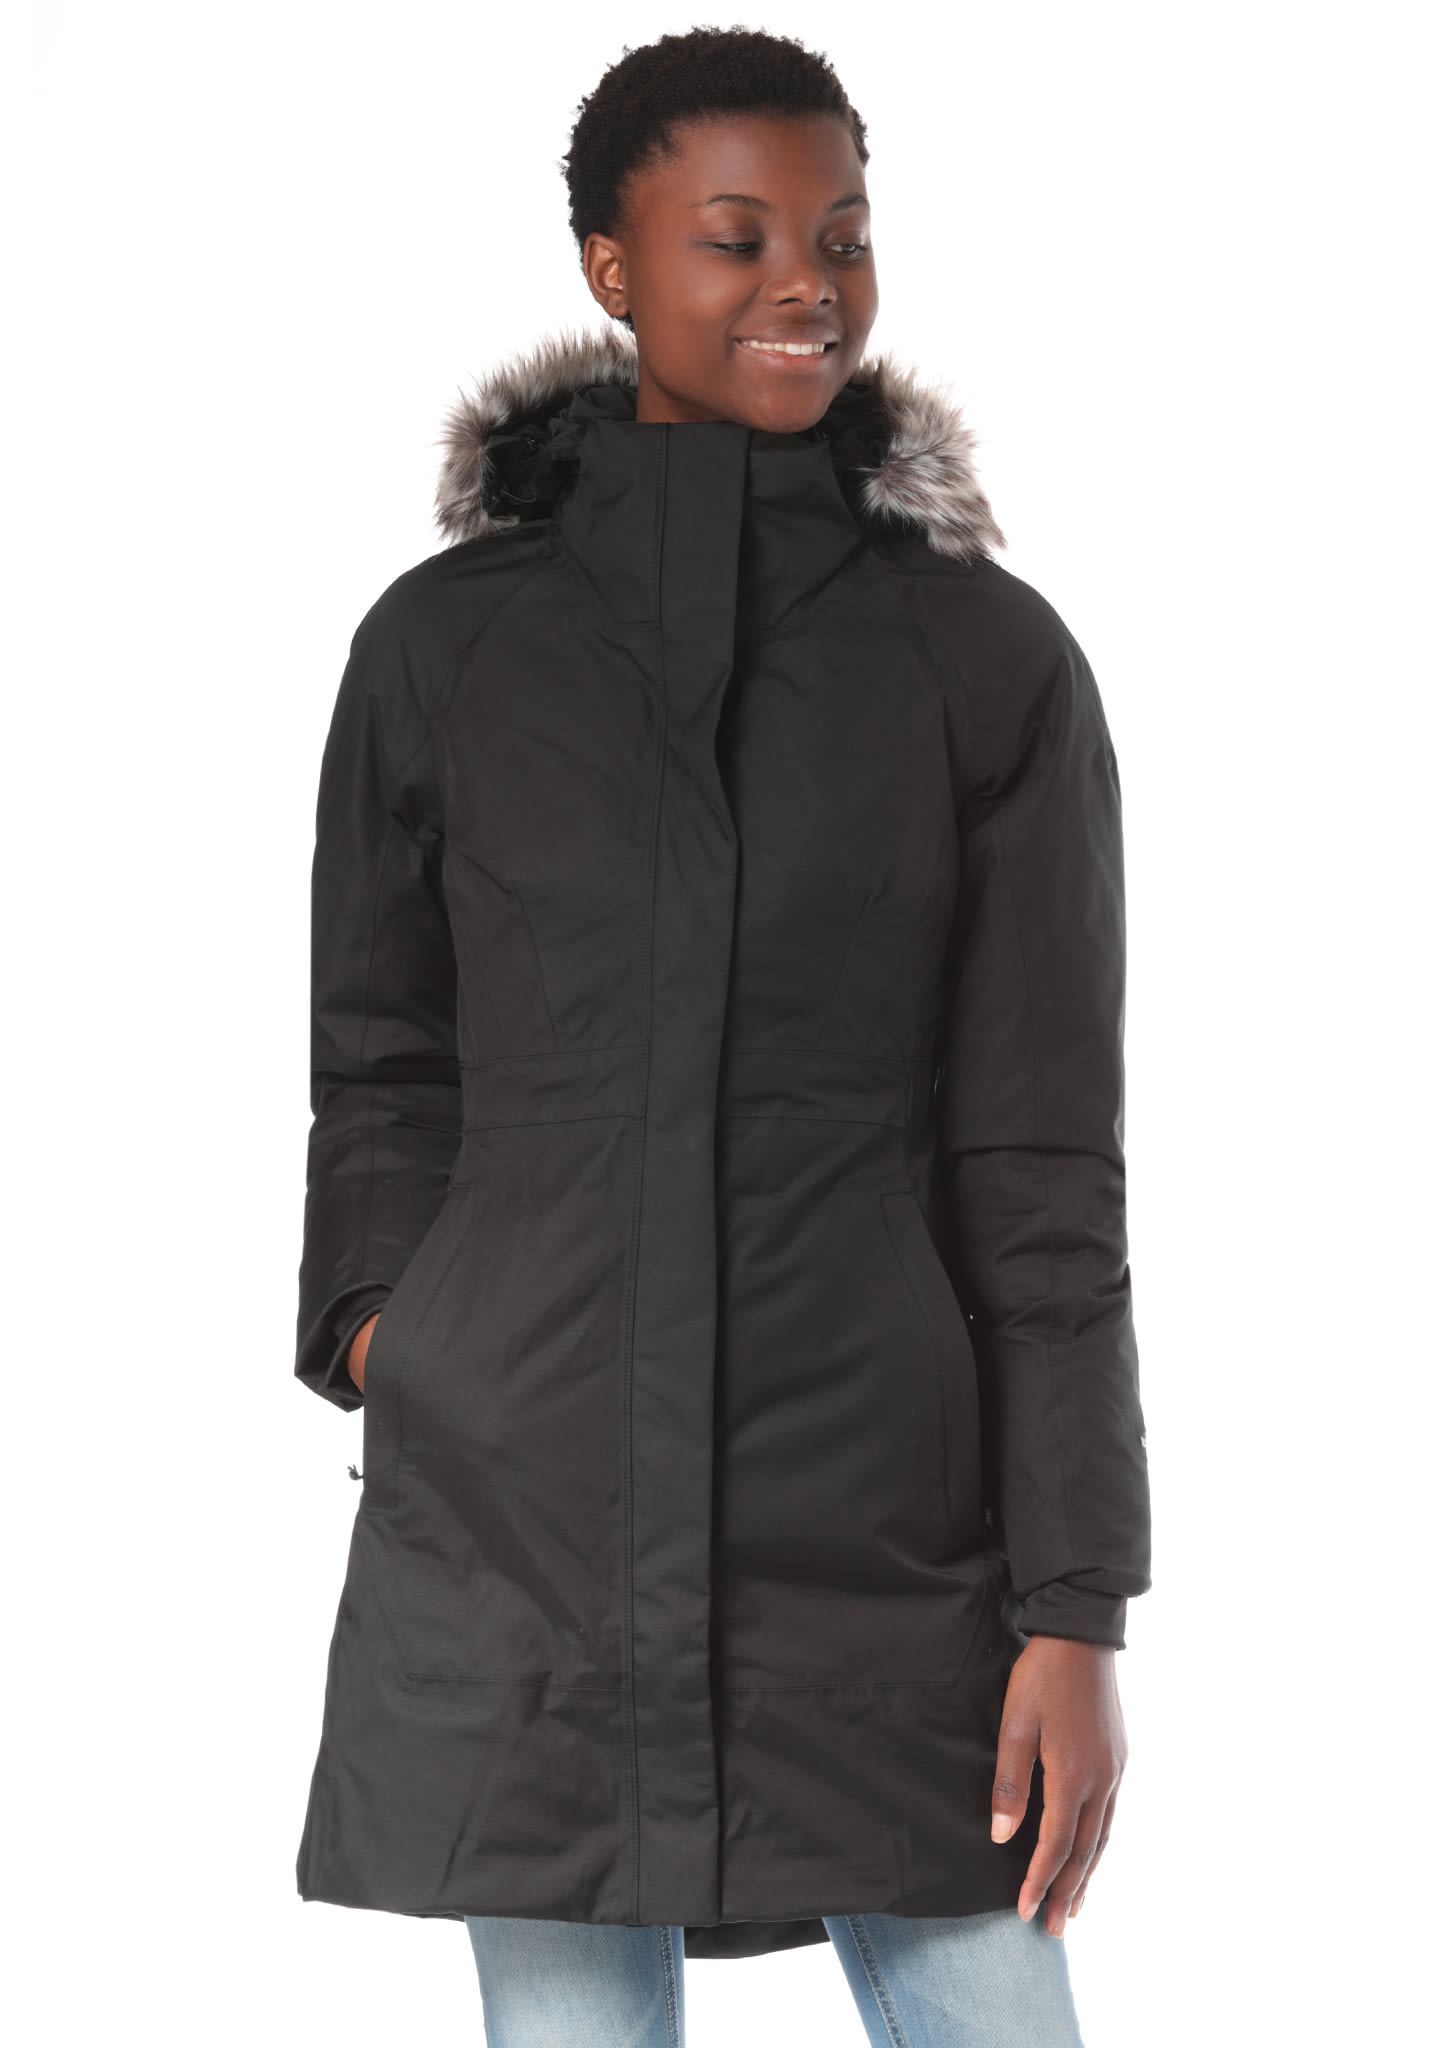 Noir Parka Femme Manteau Ii Face The Pour Arctic North Planet xAH8AwOqf